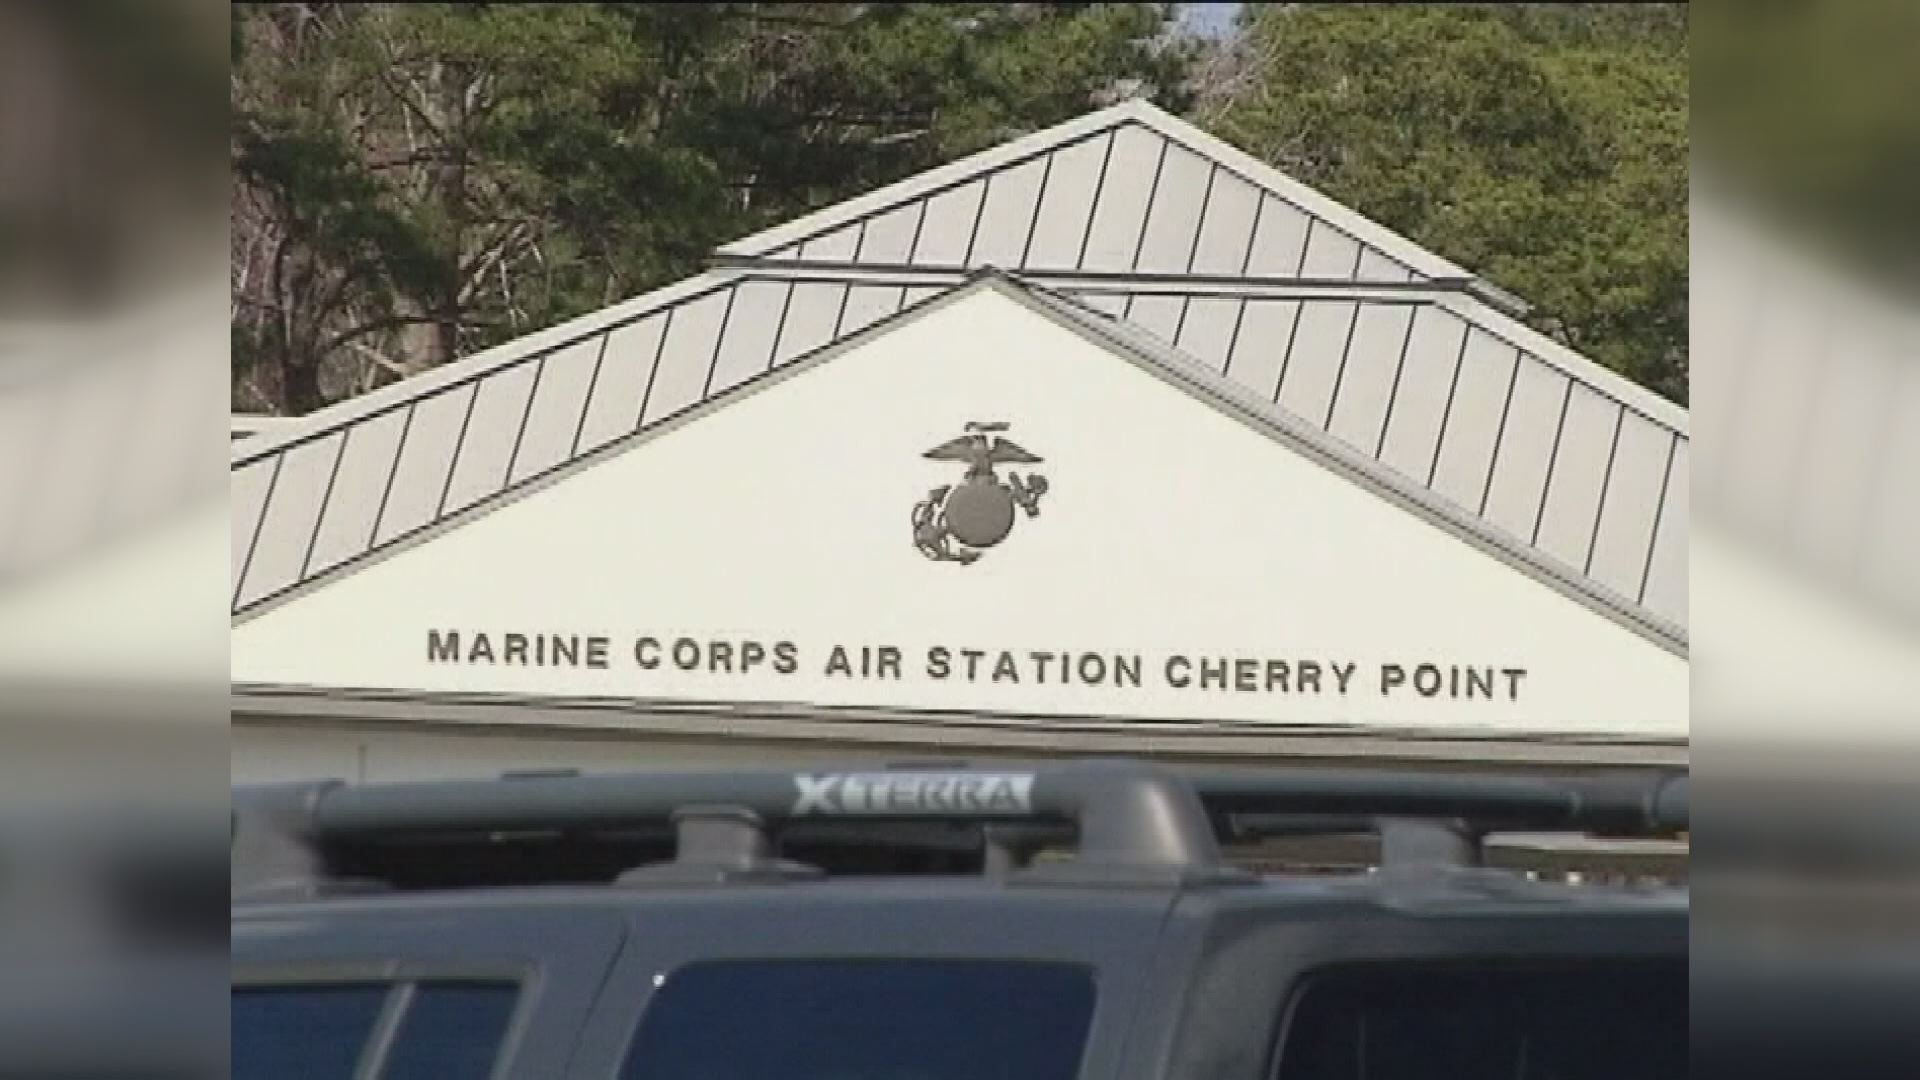 Cherry Point Marine Corps Air Station